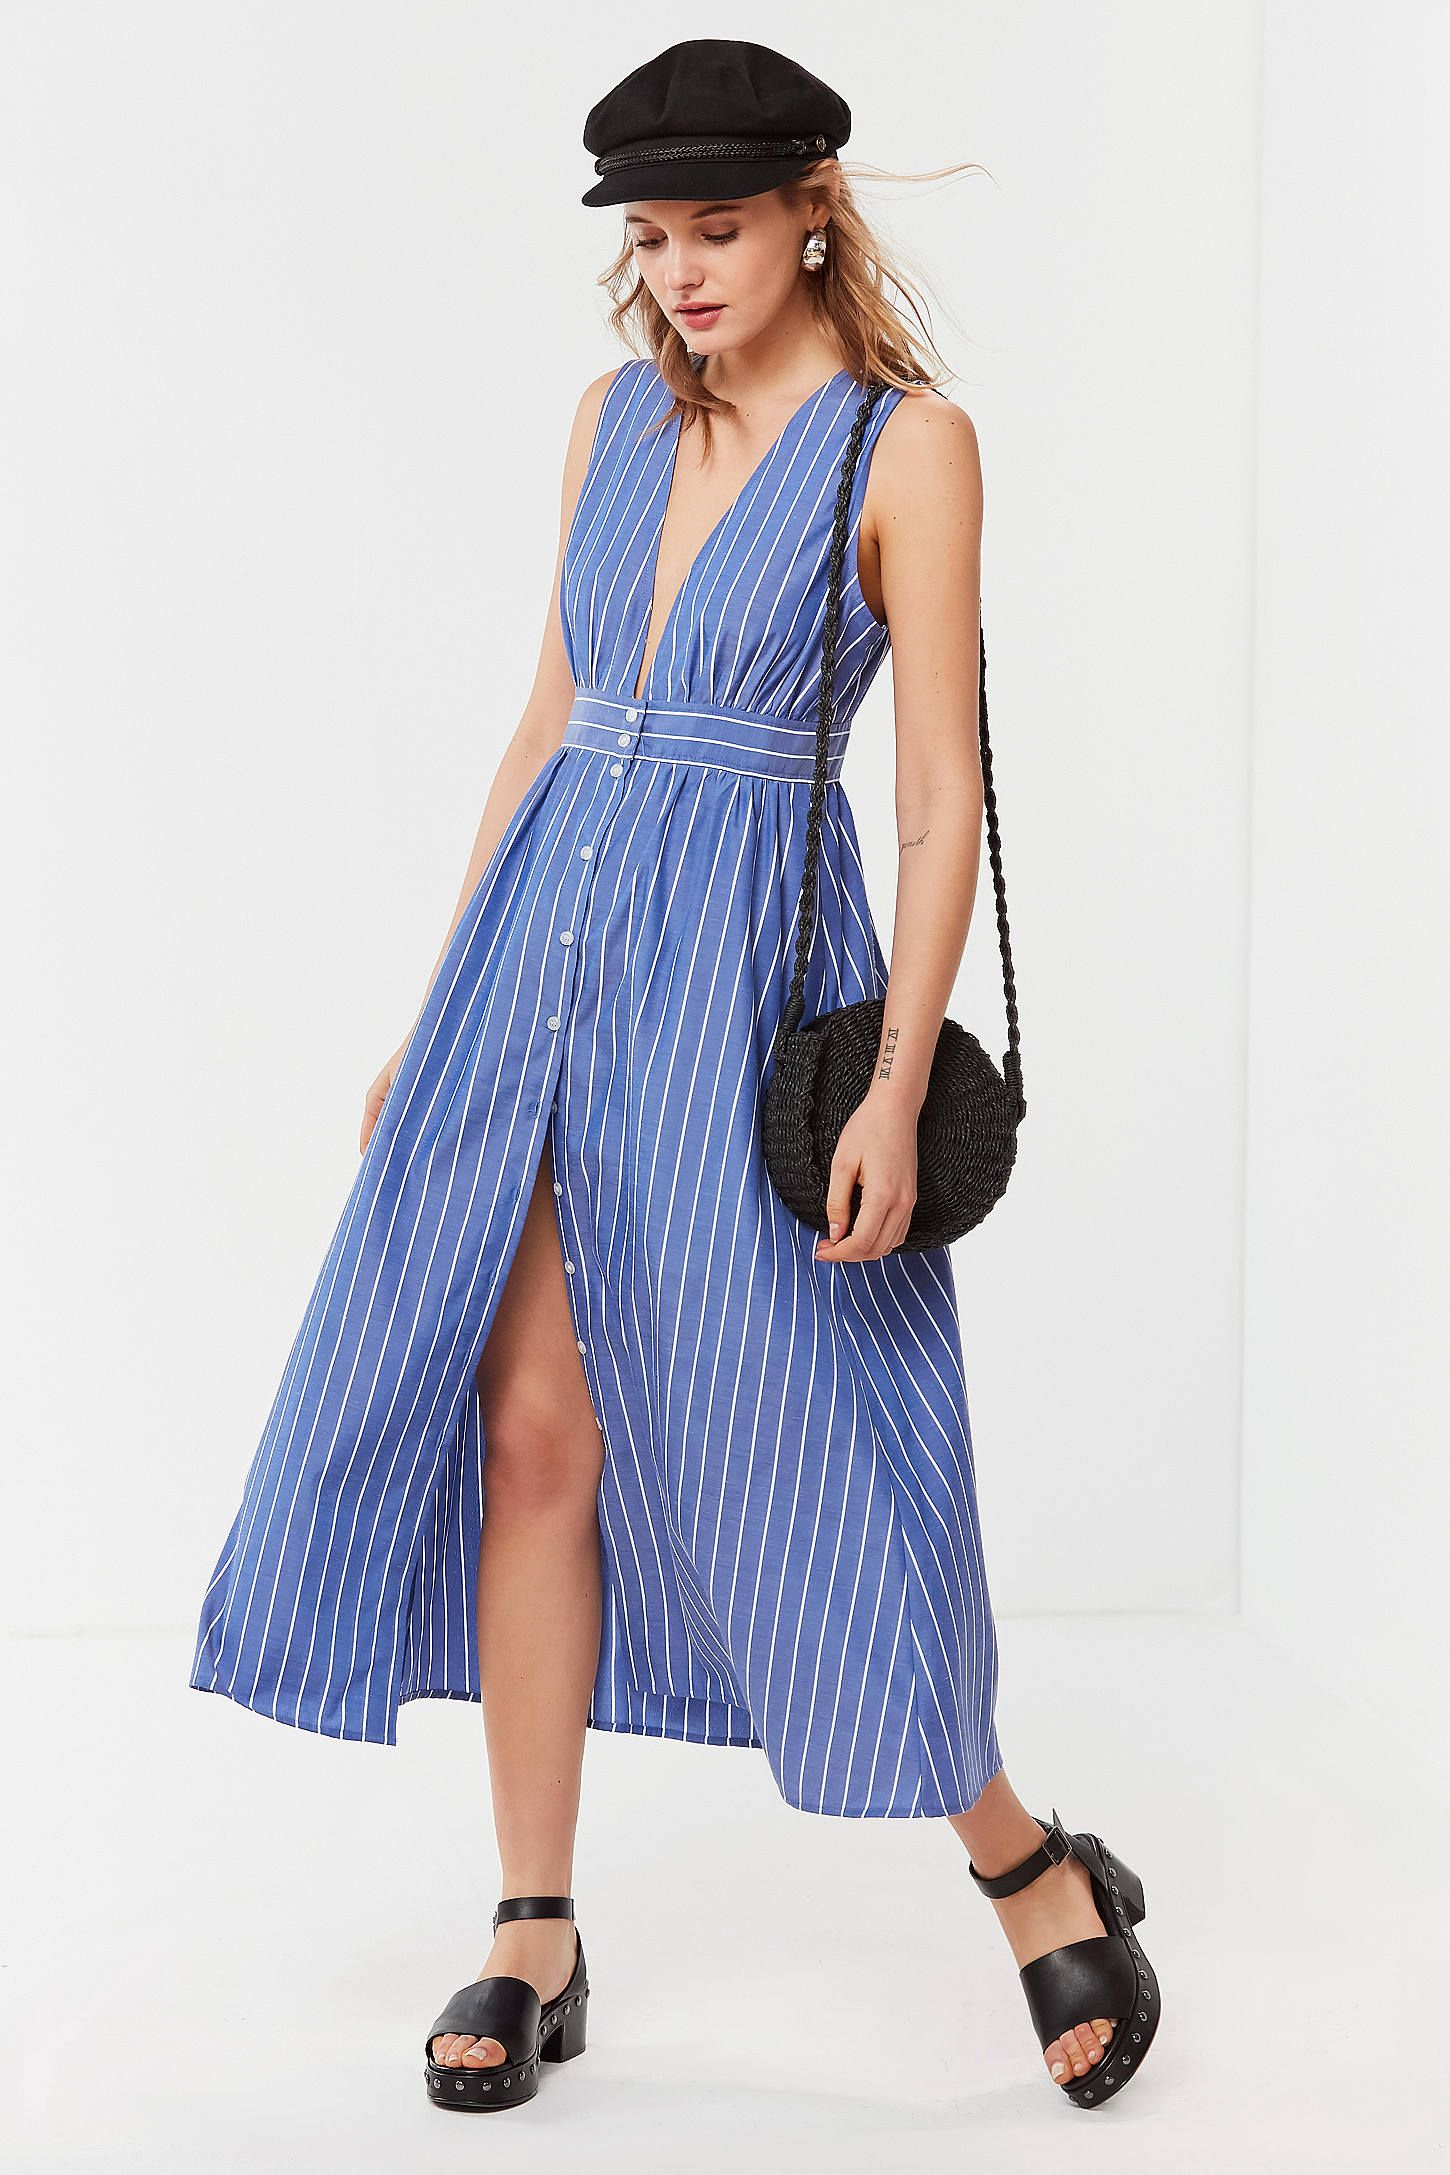 d21e48ad1b78 Shop UO Striped Button-Down Plunging Midi Dress at Urban Outfitters today.  We carry all the latest styles